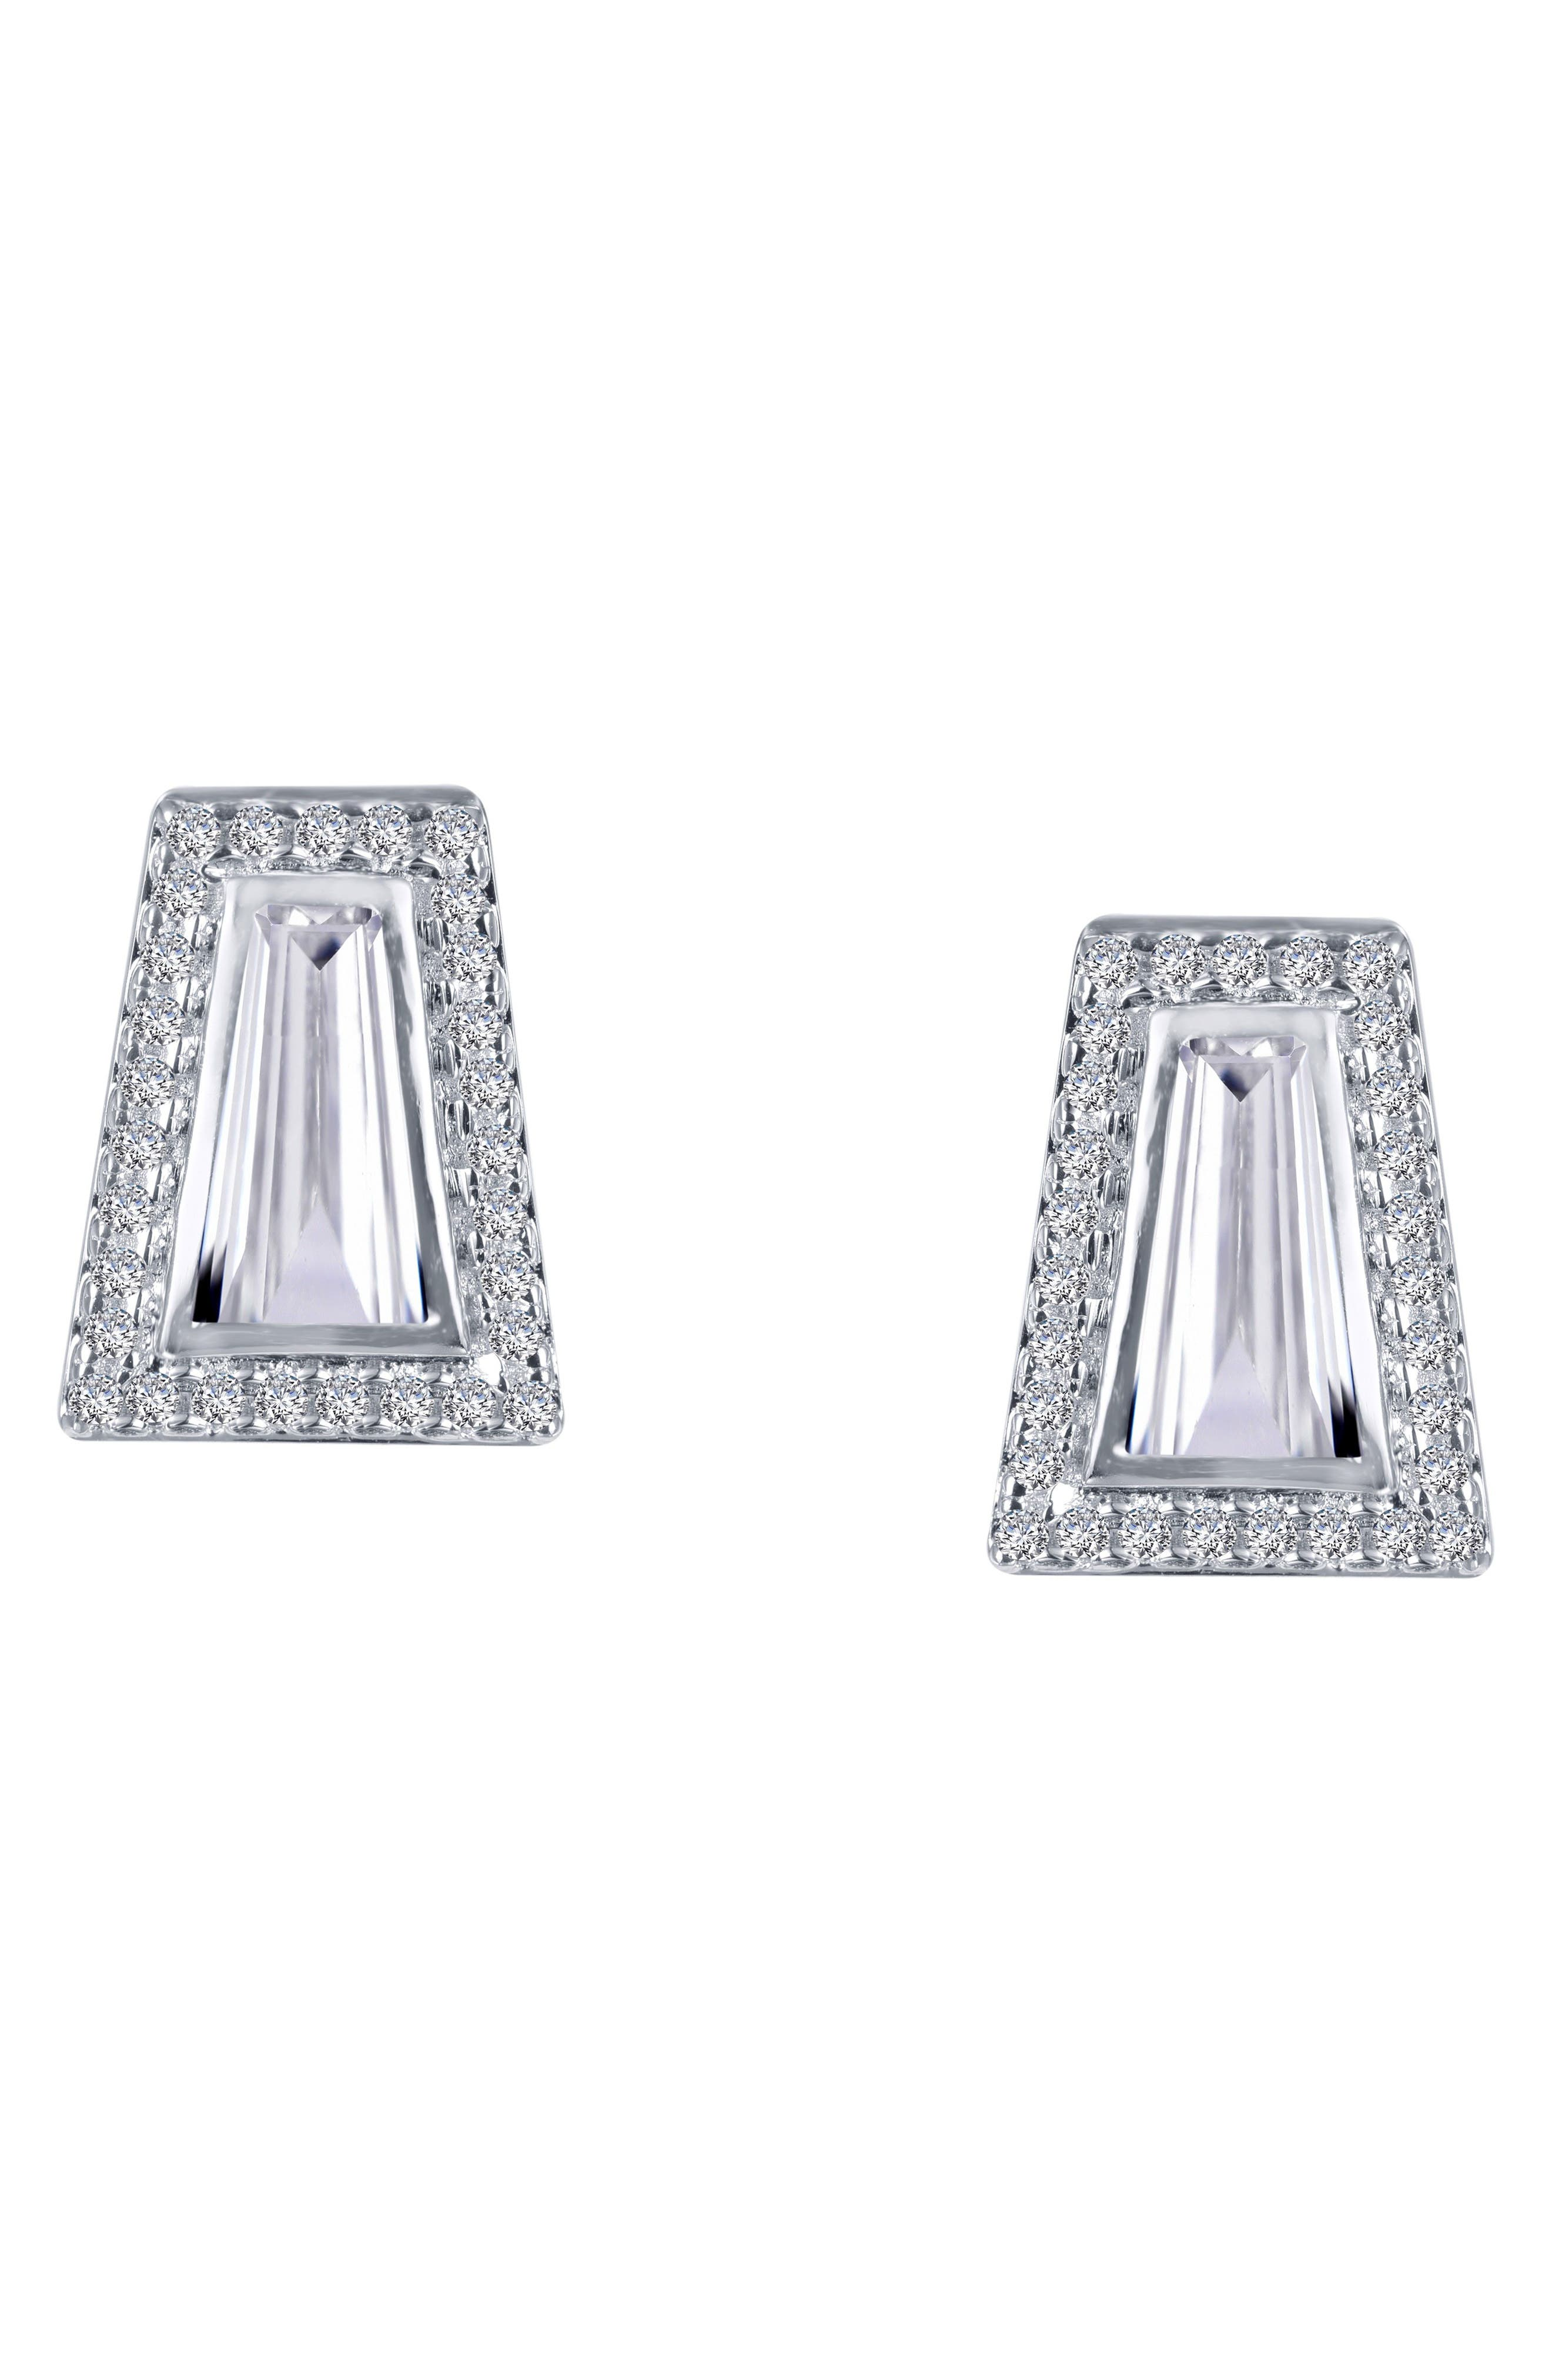 Bezel Stud Earrings,                             Alternate thumbnail 3, color,                             SILVER/ CLEAR